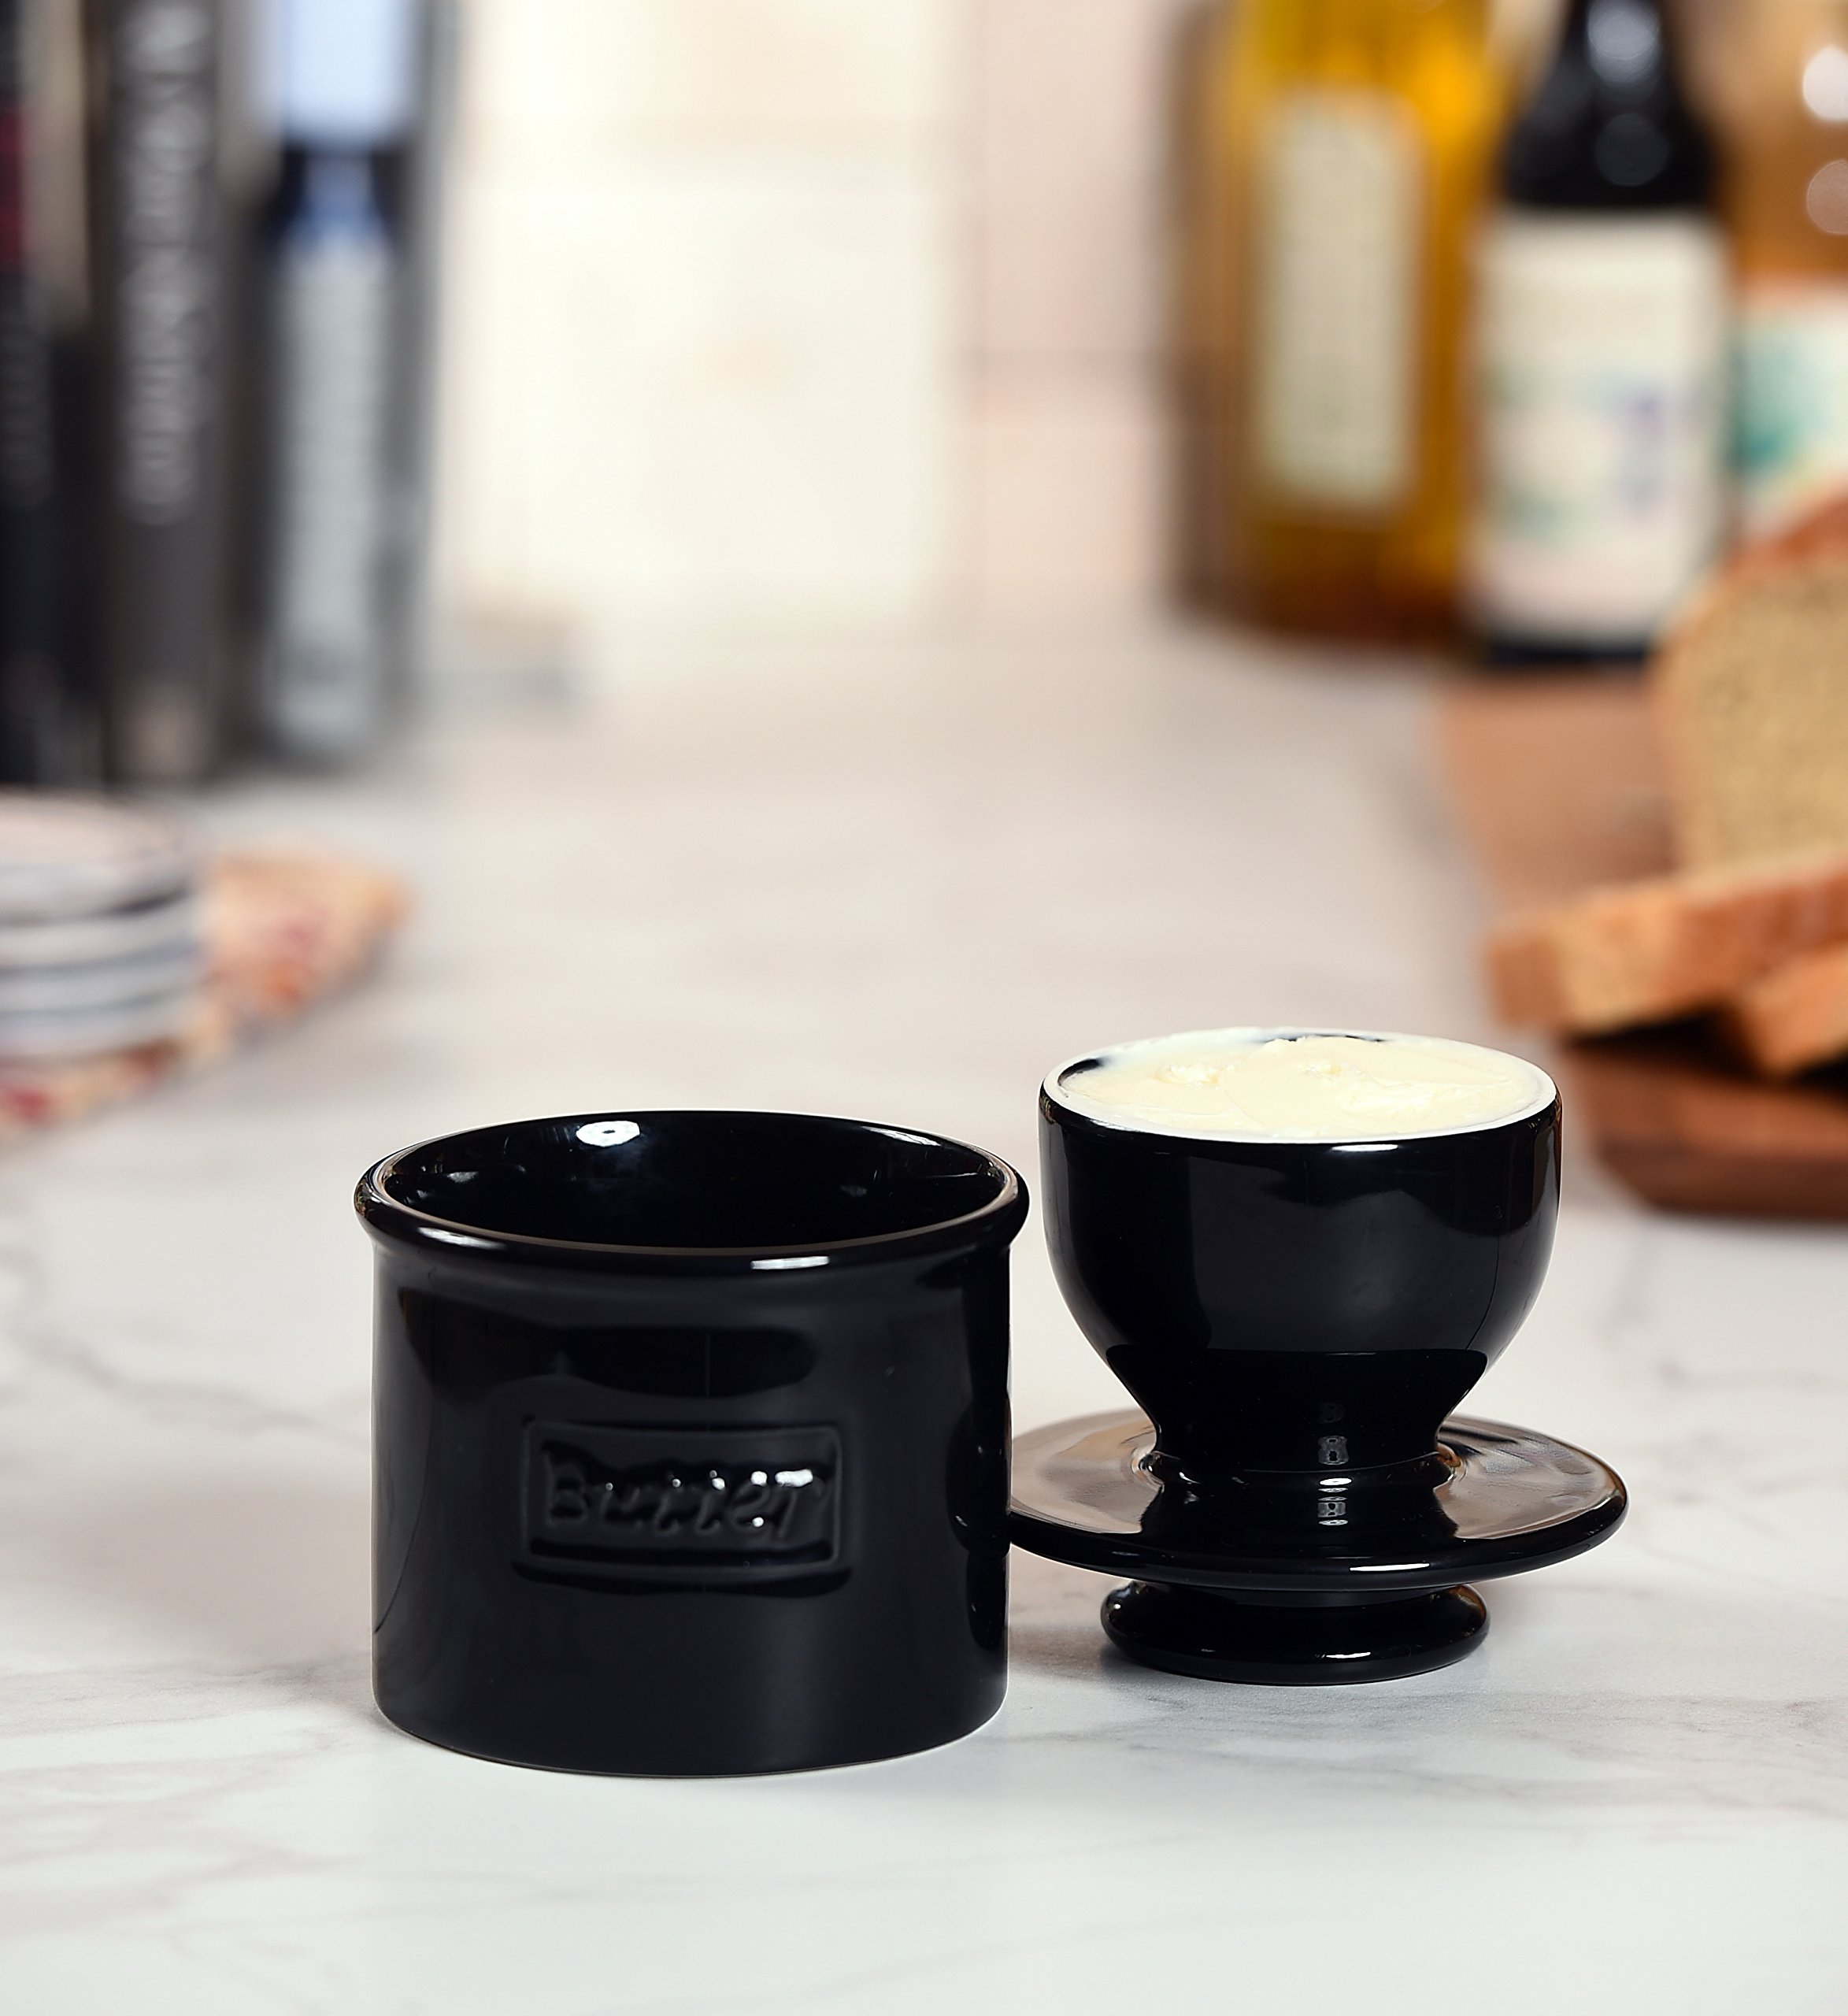 The Original Butter Bell Crock by L. Tremain, Café Retro Collection, Butter Keeper - Glossy Midnight Black by Butter Bell (Image #3)